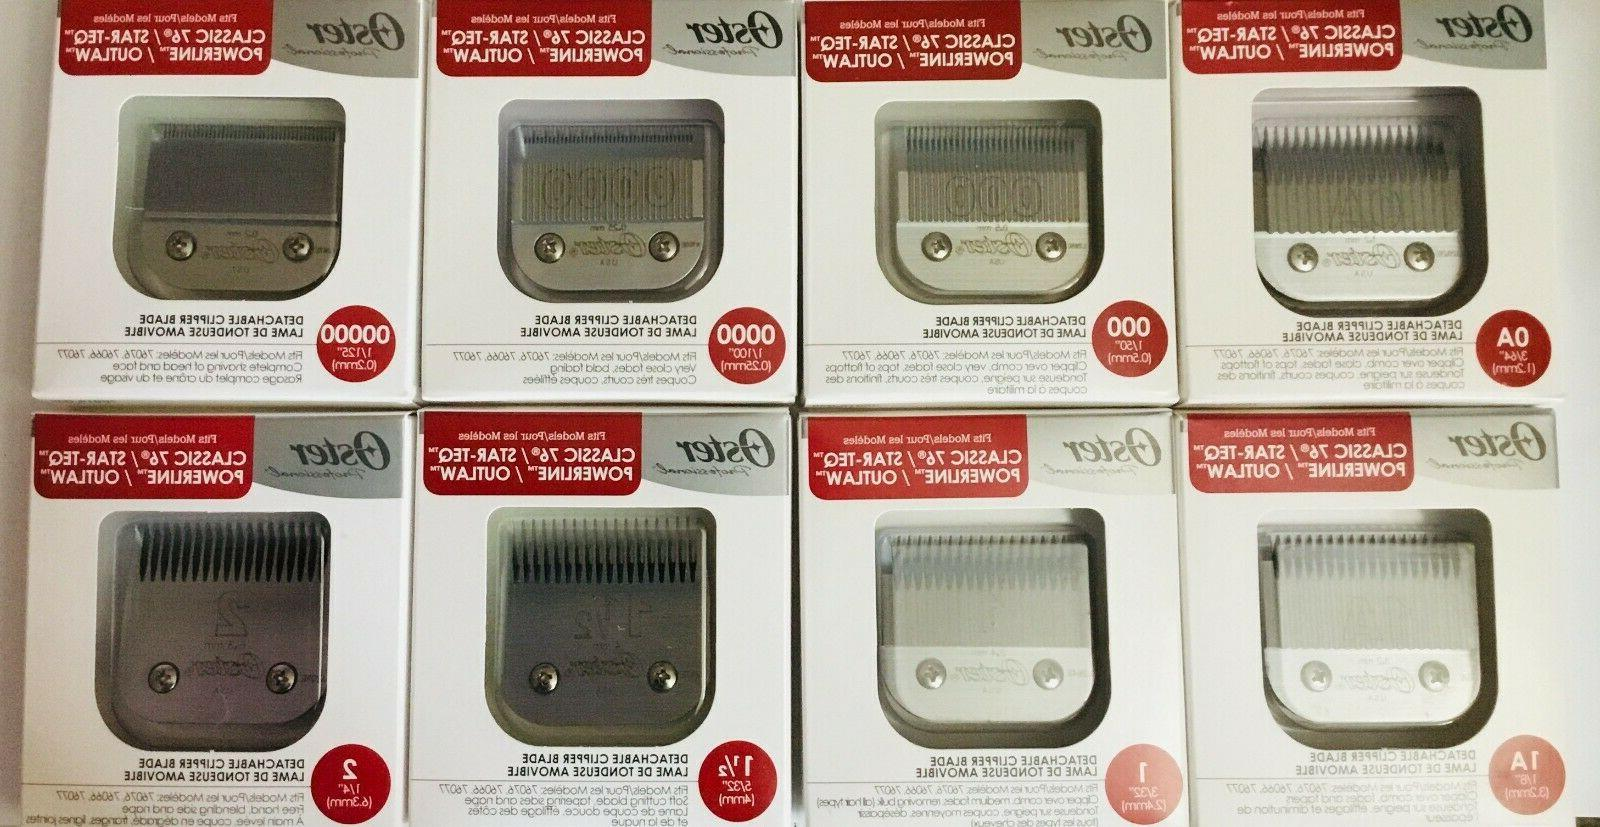 76 replacement detachable clippers blades fits classic